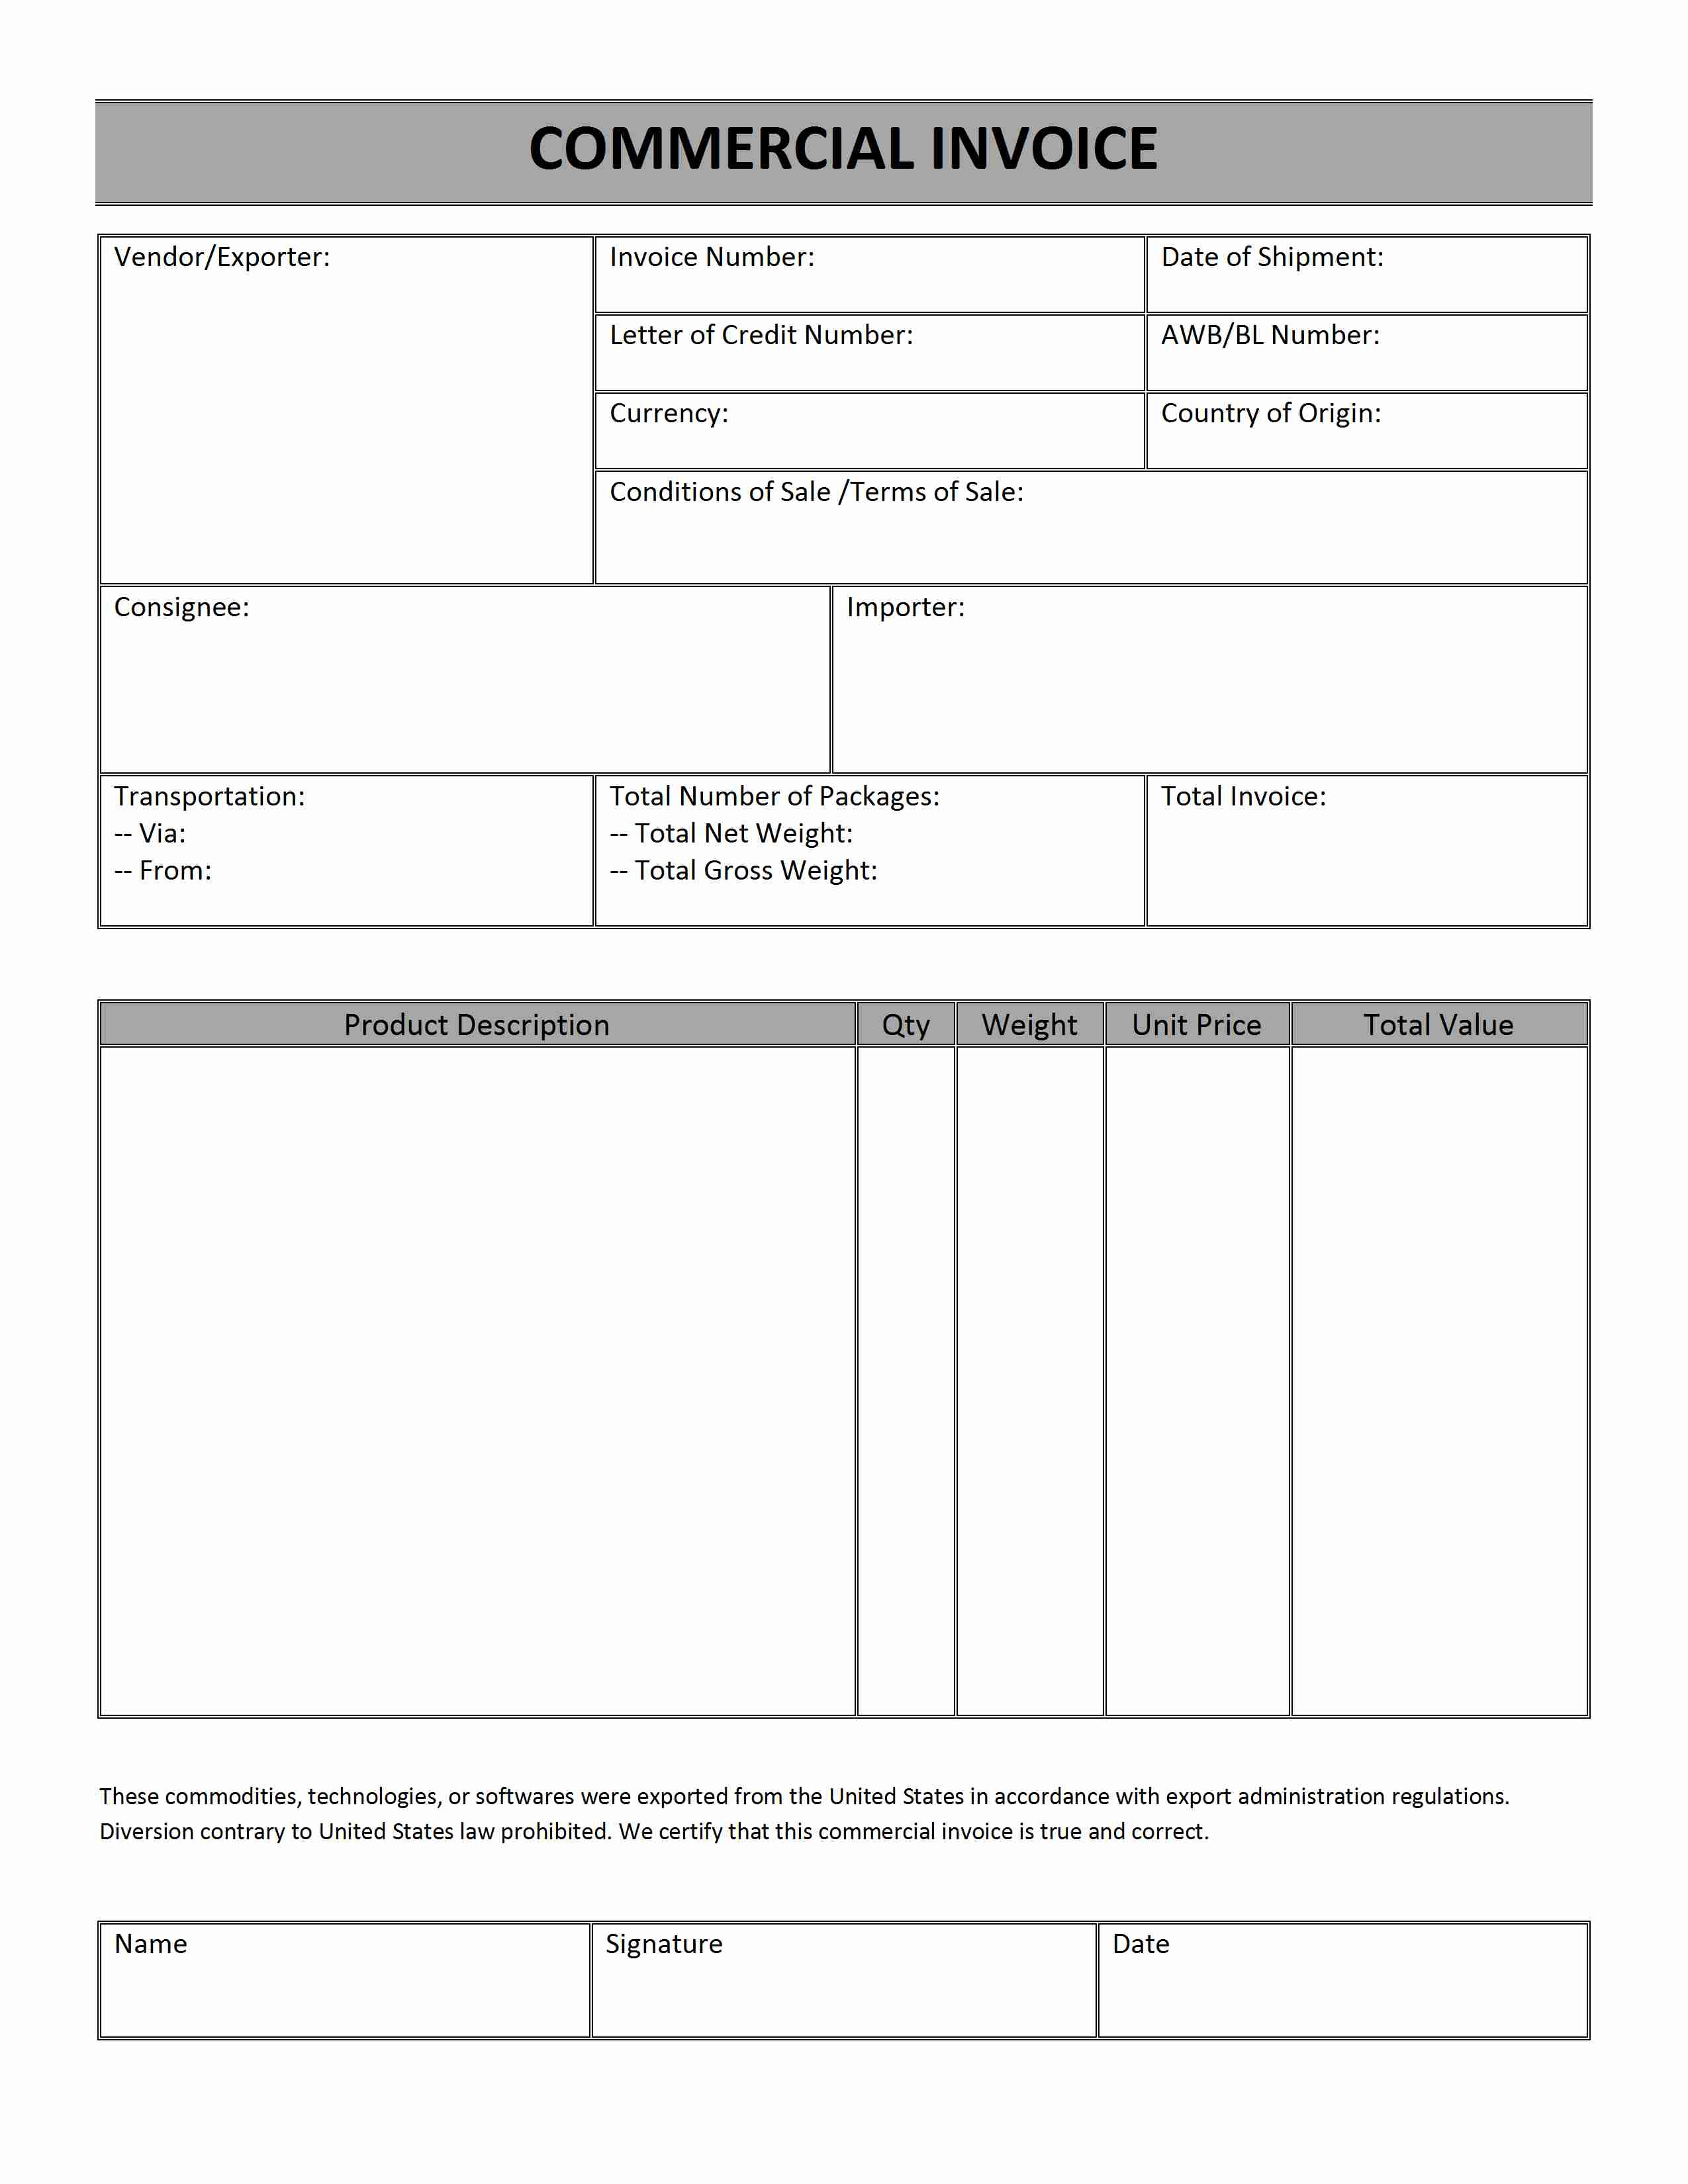 Aaaaeroincus  Pleasant Printable Sales Invoice Simple Invoice Form Free Invoice  With Likable Printable Receipt Free  Free Printable Raffle Tickets  Receipt   Printable With Comely Sample Of Invoice Letter Also Purchase Order Invoice Process In Addition Invoice Blank Form And Mazda  Invoice As Well As Cute Invoice Template Additionally Sample Quickbooks Invoice From Happytomco With Aaaaeroincus  Likable Printable Sales Invoice Simple Invoice Form Free Invoice  With Comely Printable Receipt Free  Free Printable Raffle Tickets  Receipt   Printable And Pleasant Sample Of Invoice Letter Also Purchase Order Invoice Process In Addition Invoice Blank Form From Happytomco